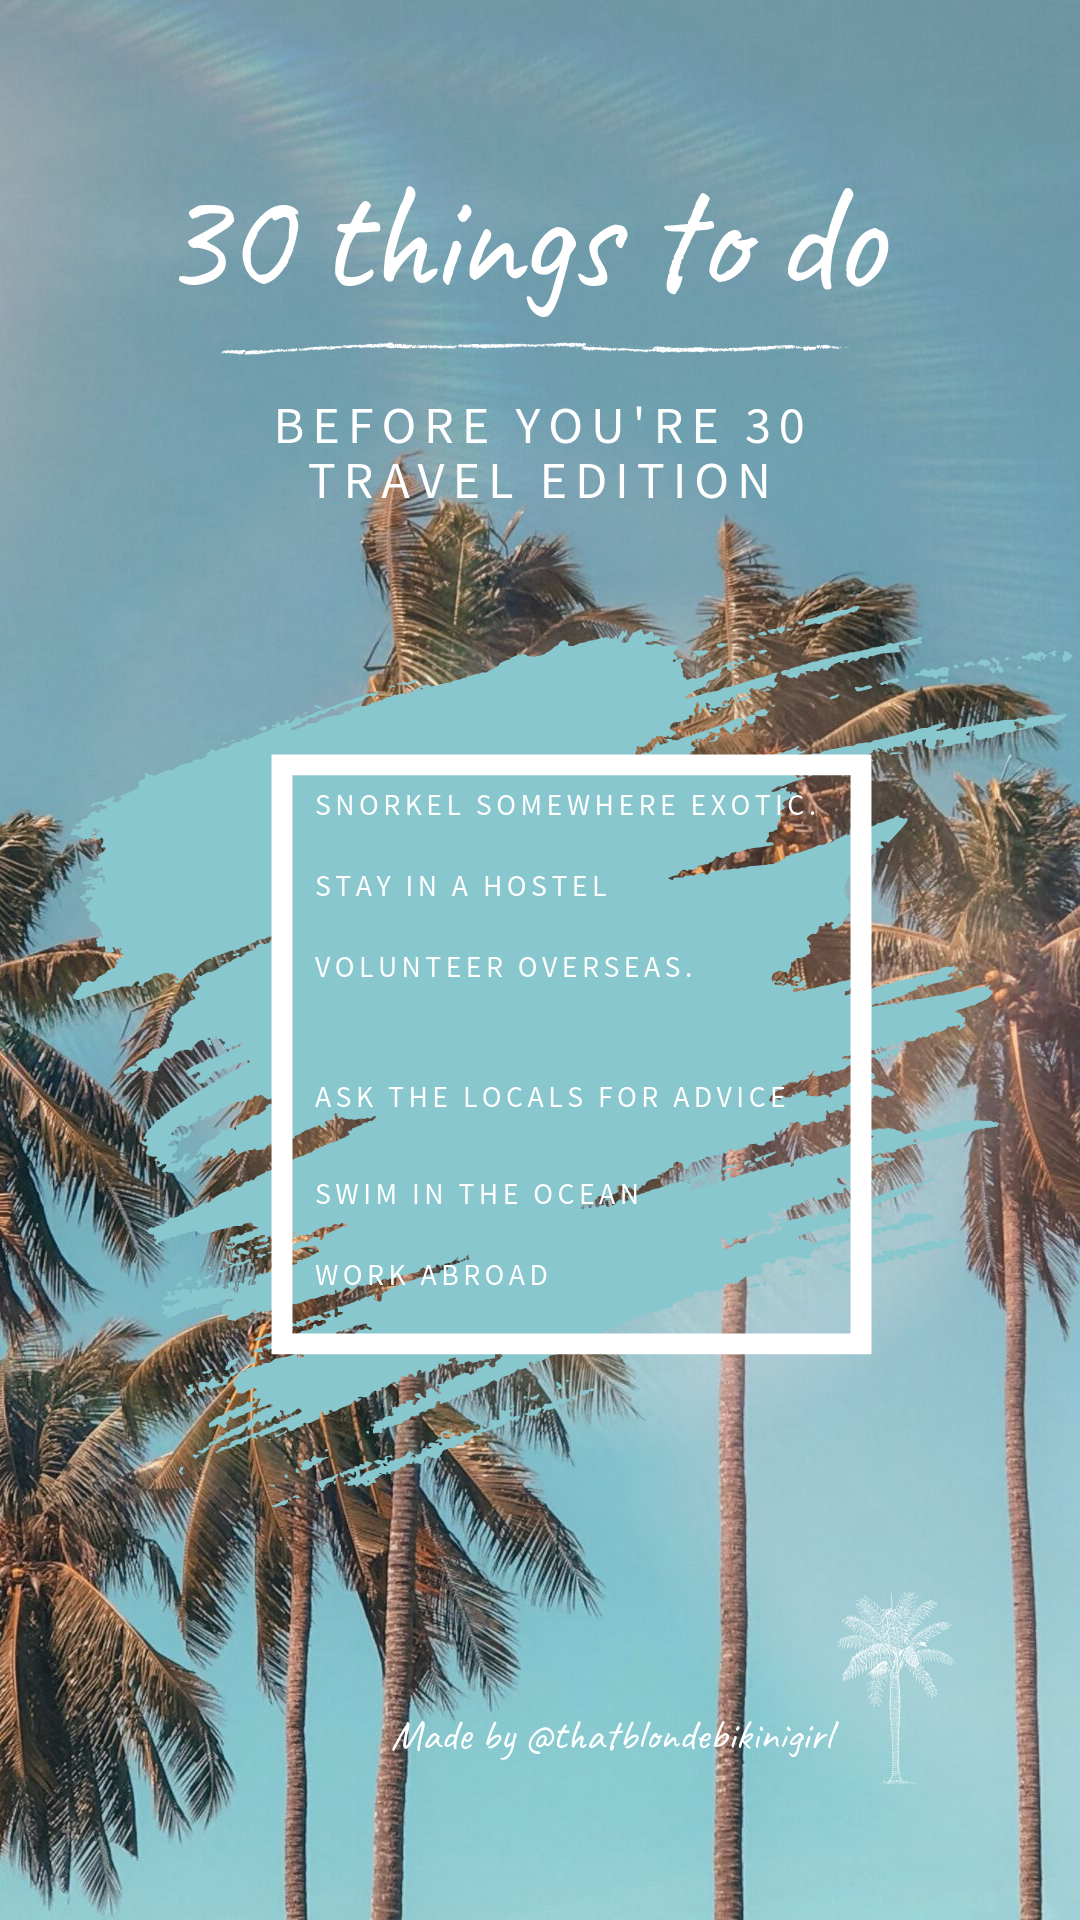 30 things to do before you're 30 travel edition